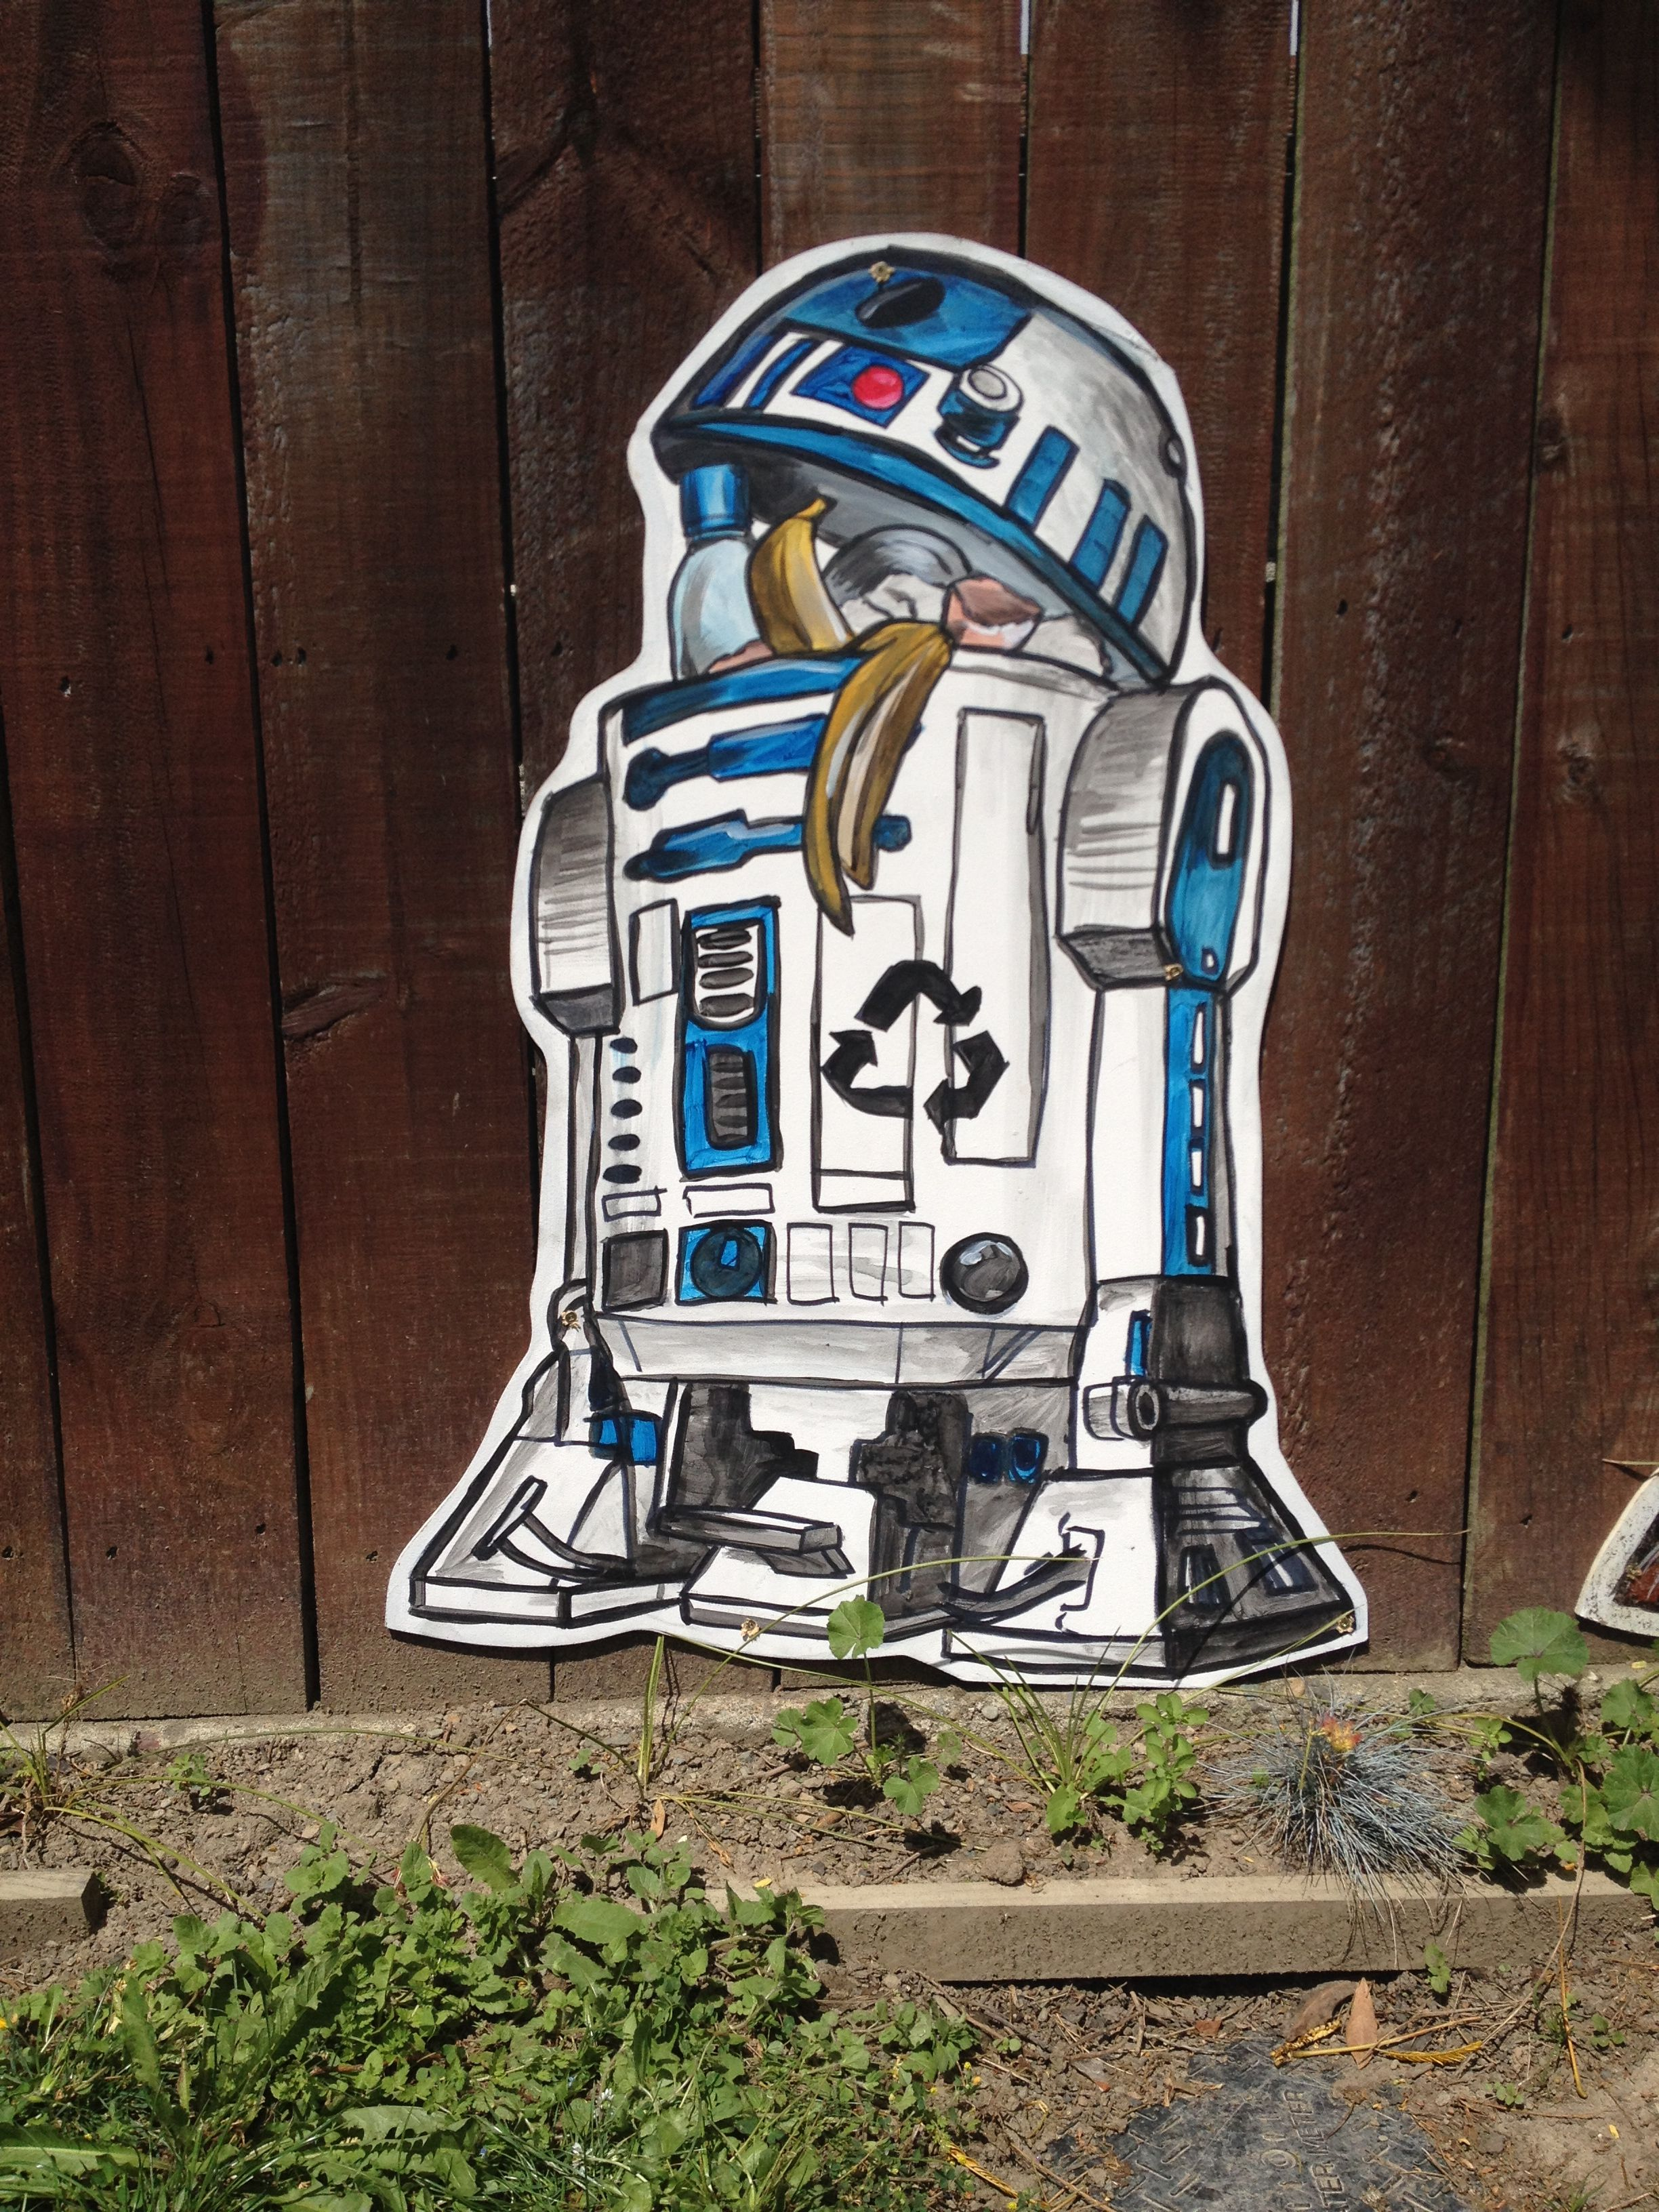 R2 Recycler Star Wars Graffiti Art